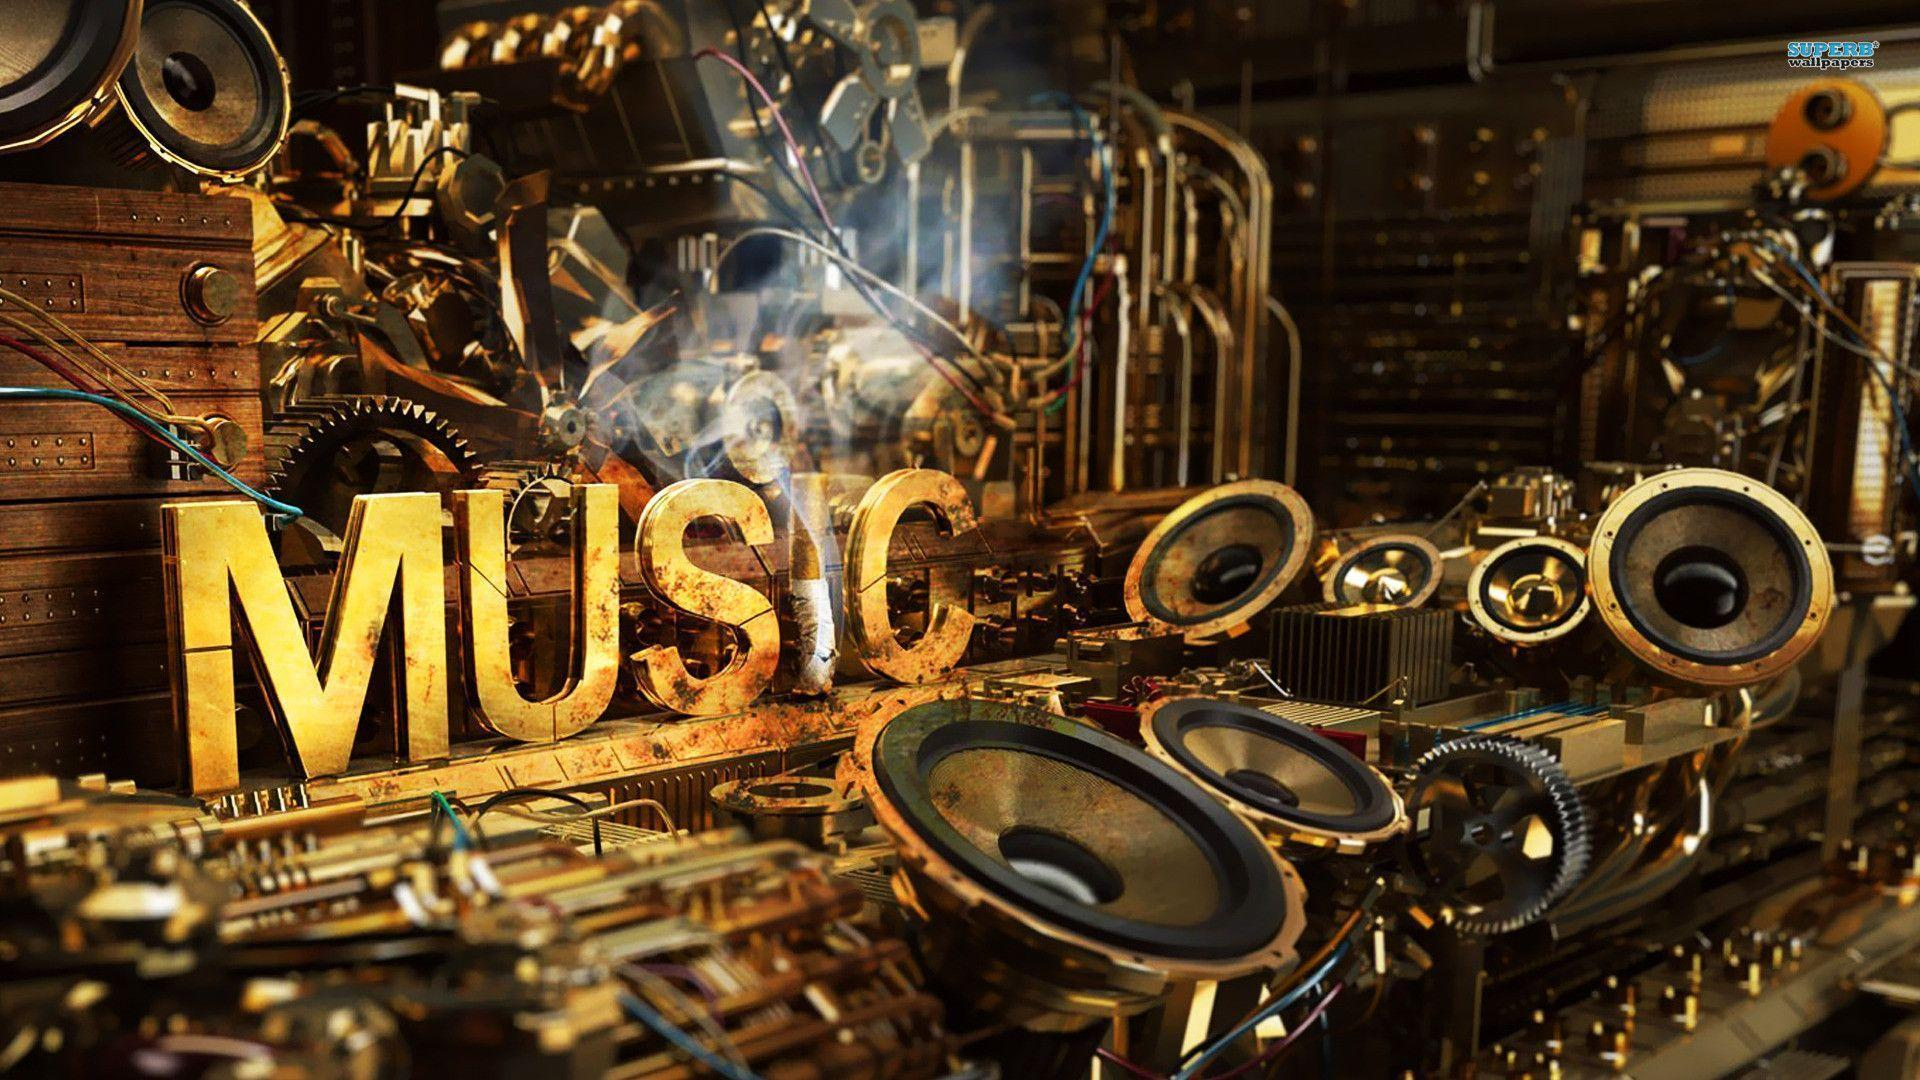 Music Wallpaper Images Stock Photos Vectors